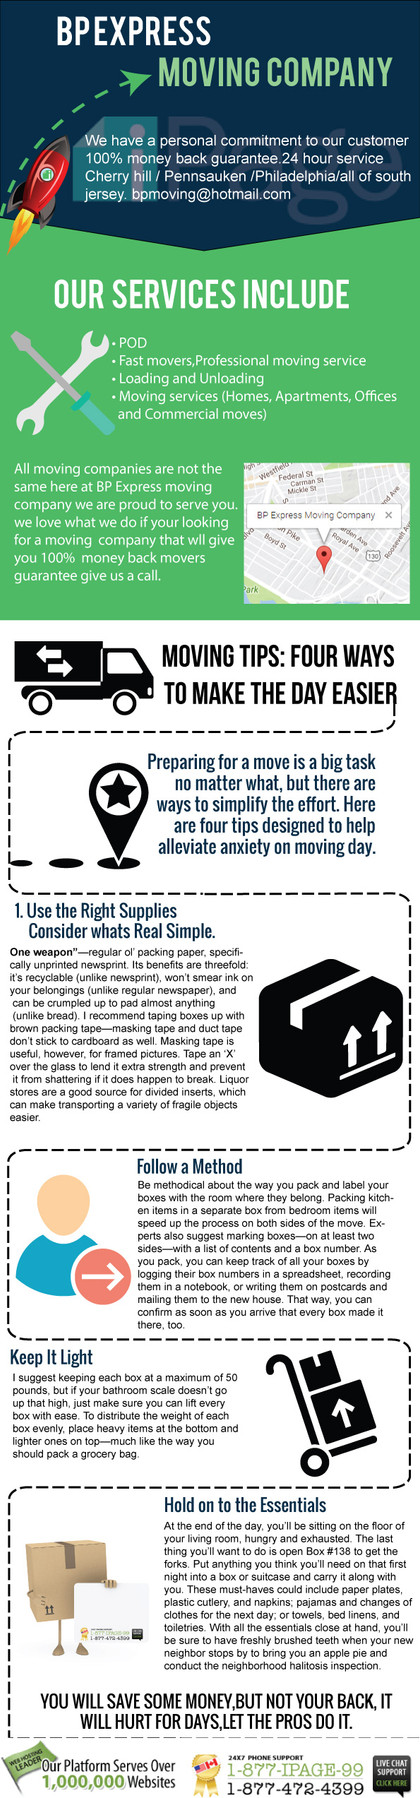 BP Express moving company infographic page